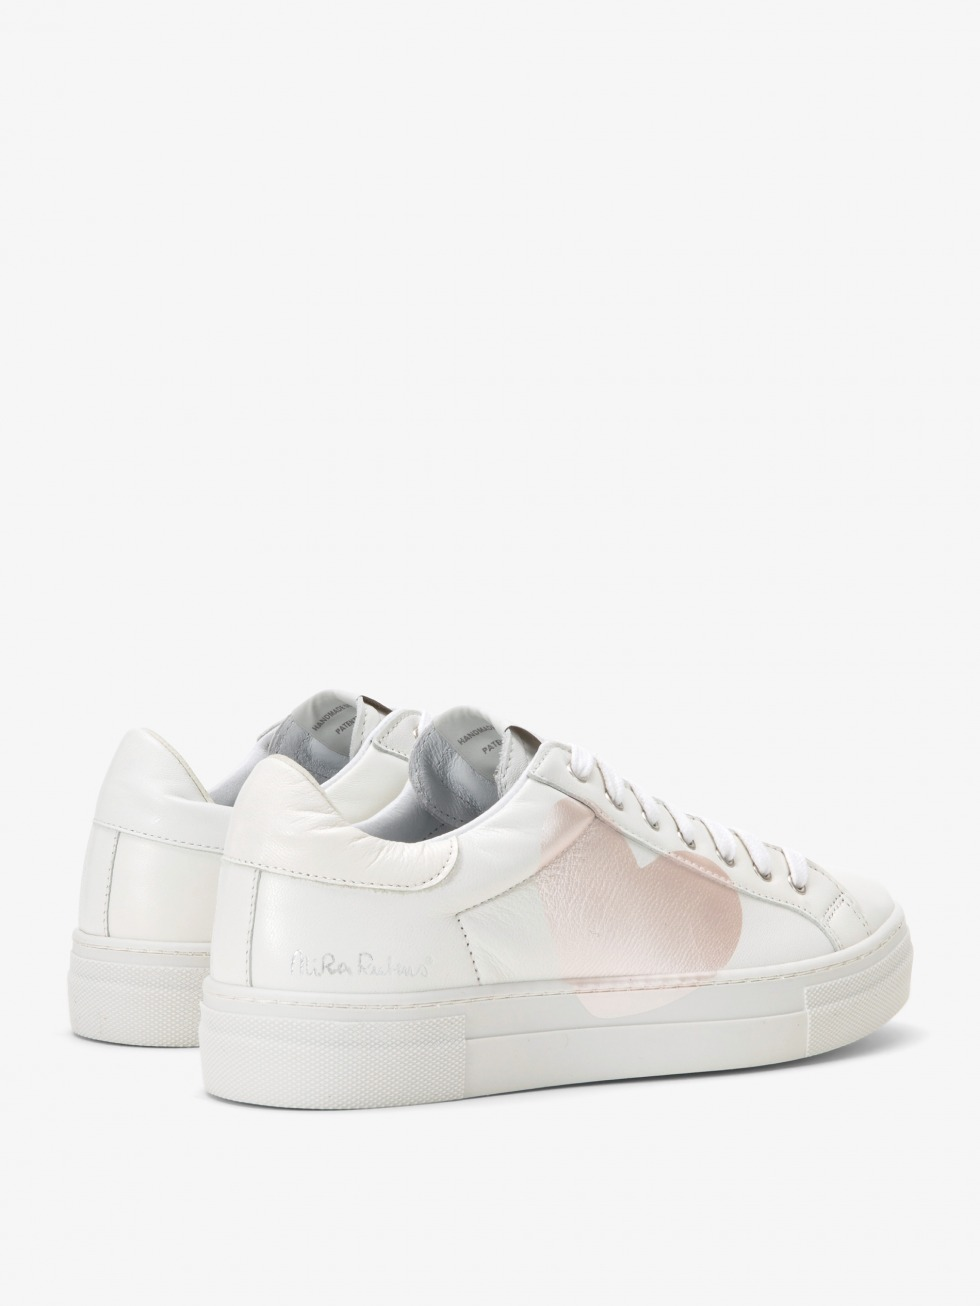 Martini White Sneakers - Pink Mother of Pearl Heart